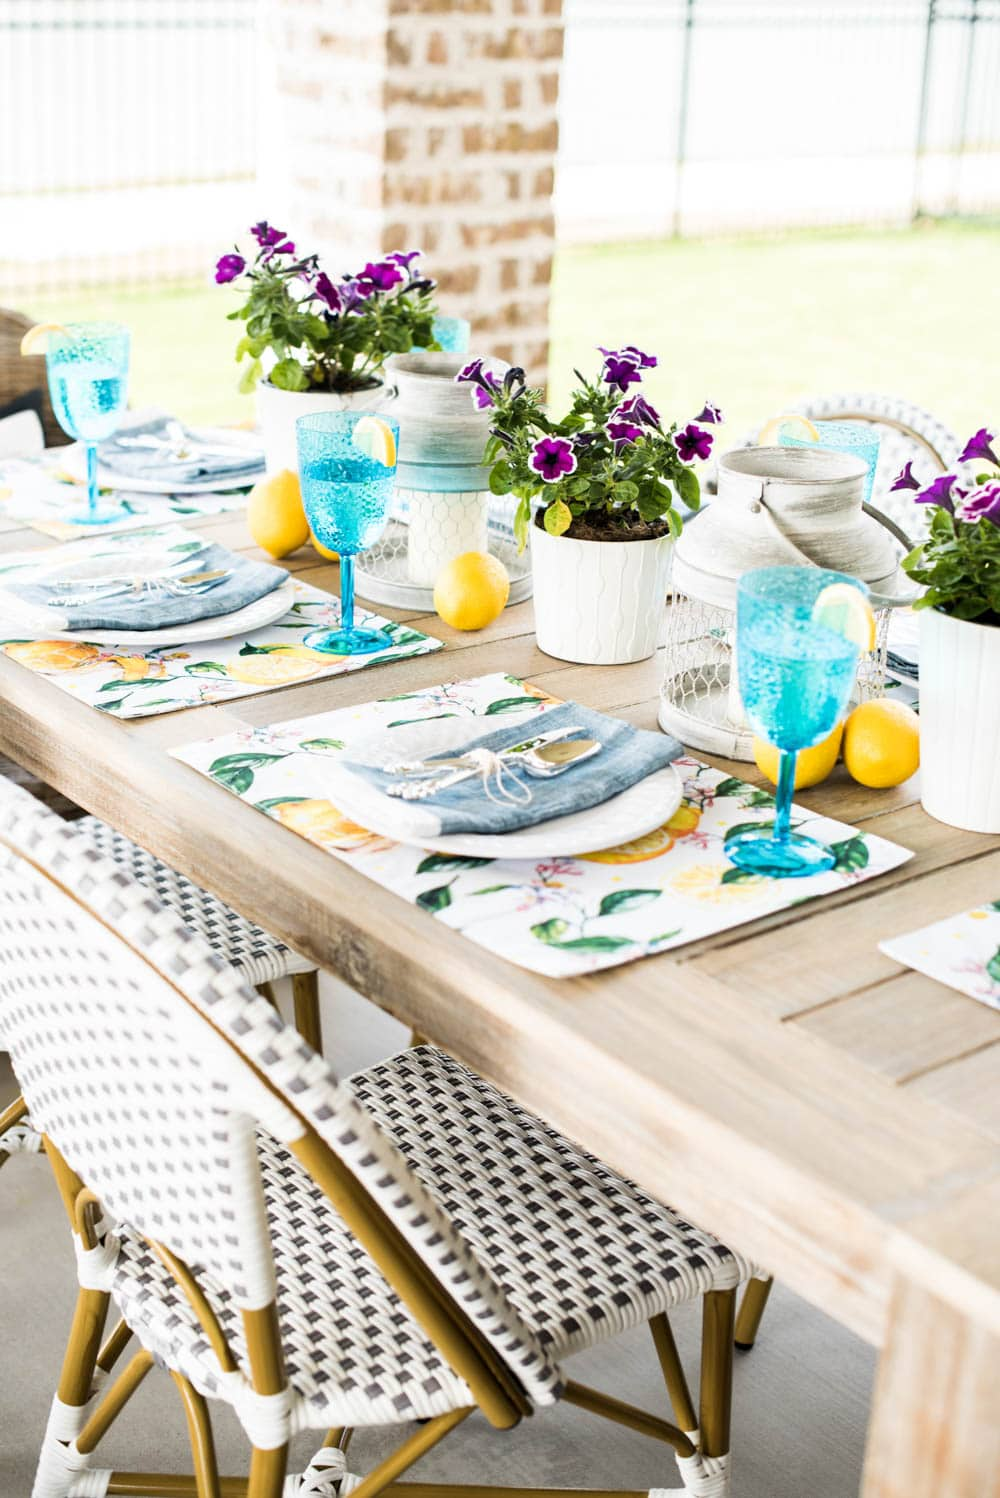 Gather melamine outdoor entertaining pieces for effortless spring decorating on the patio. #ABlissfulNest #springideas #springdecor